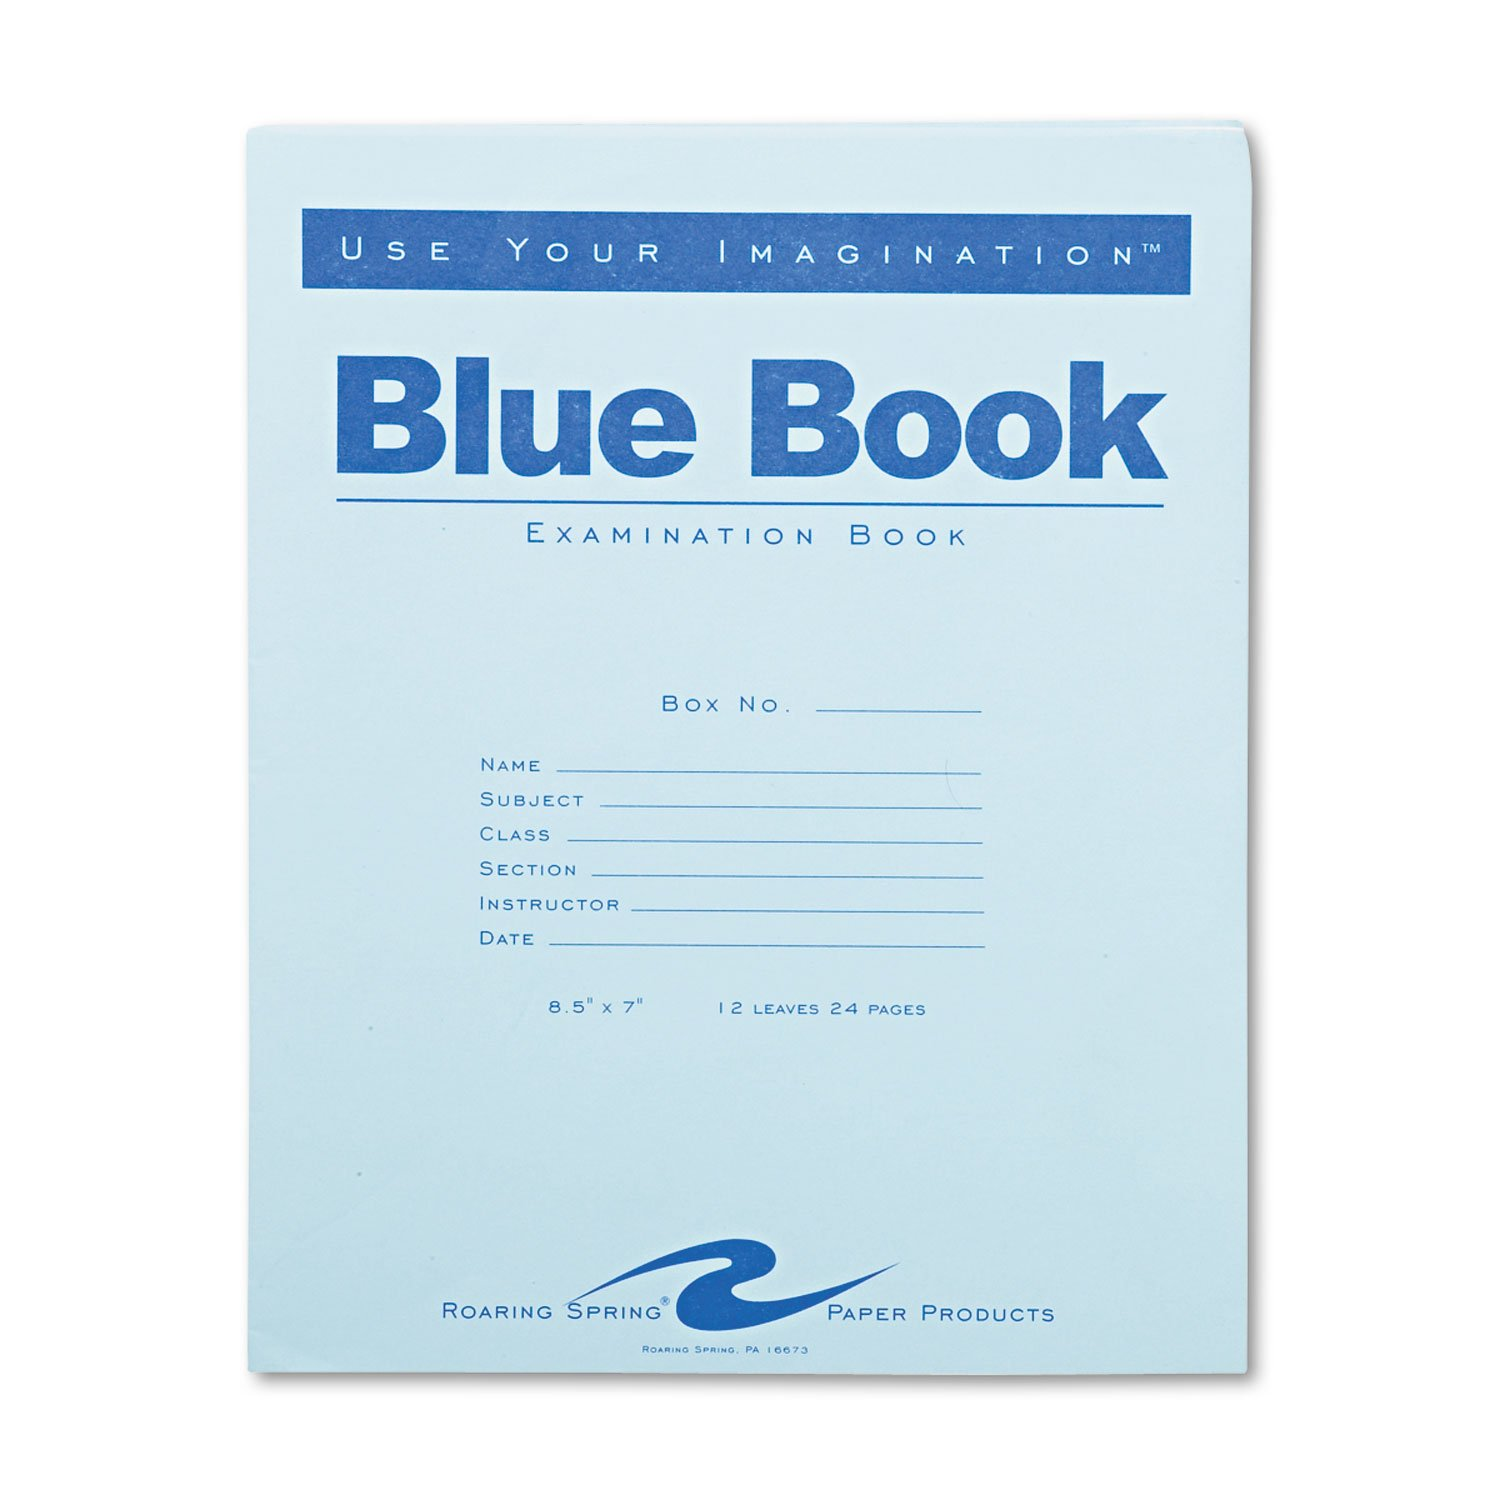 amazon com roaring spring exam blue book margin rule x  amazon com roaring spring exam blue book margin rule 8 1 2 x 7 inches white 12 sht 24 page 77513 exam notebooks kitchen dining